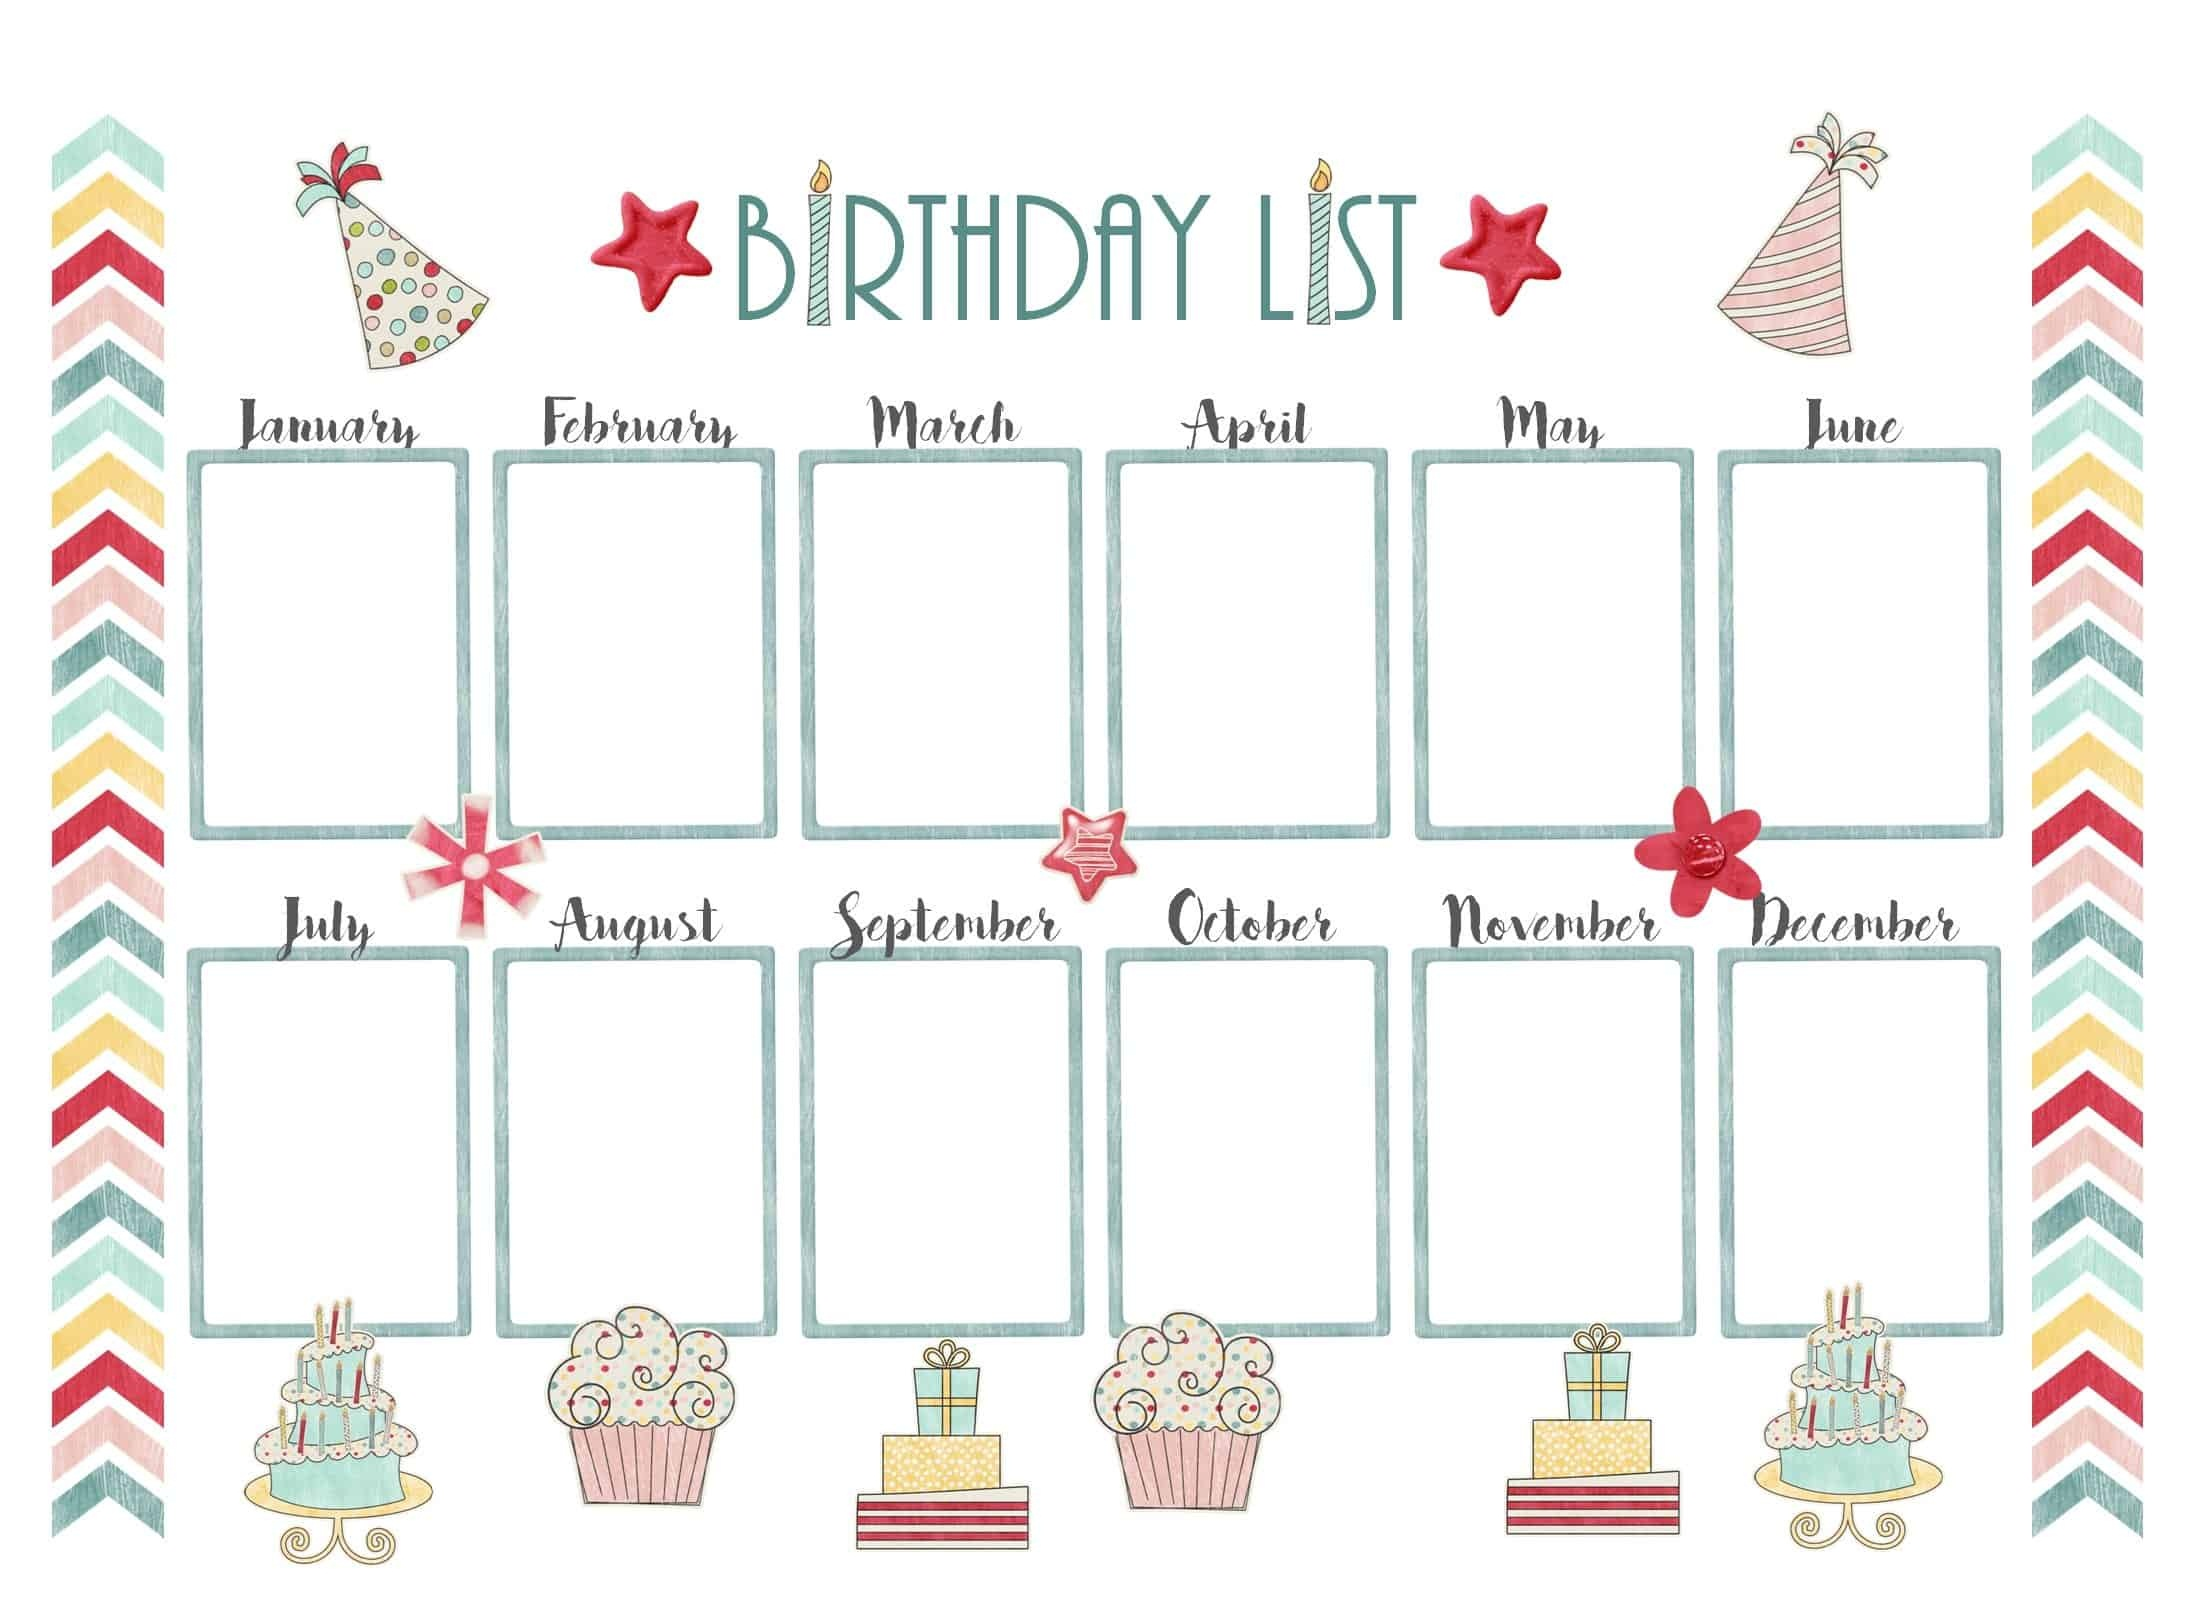 Birthday Calendar Template Free Microsoft Word